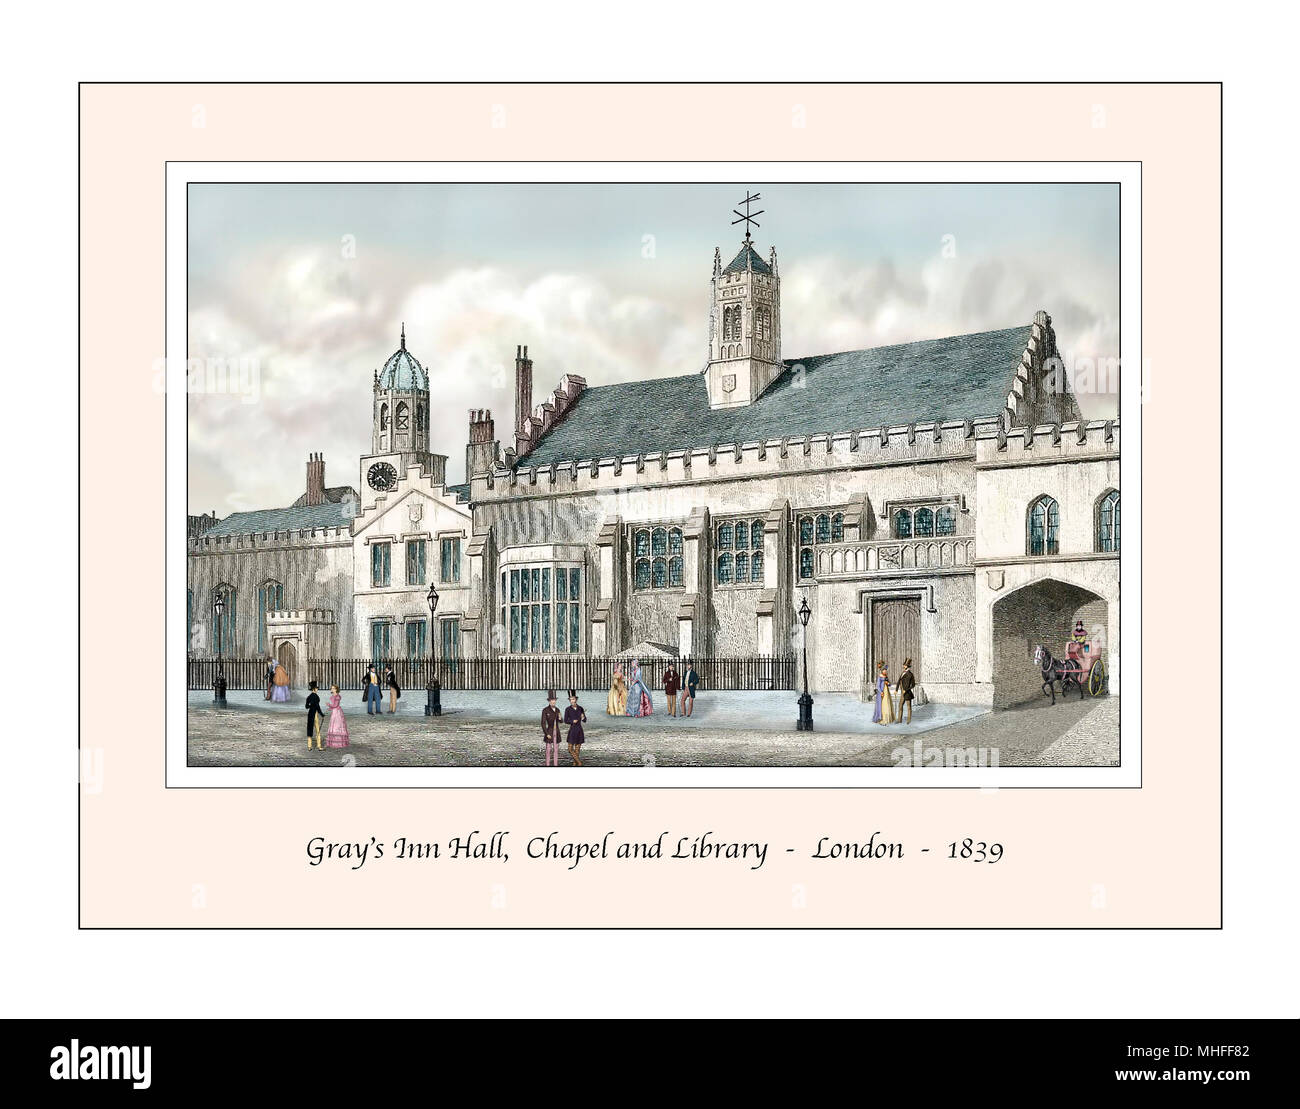 Gray's Inn London Original Design based on a 19th century Engraving - Stock Image